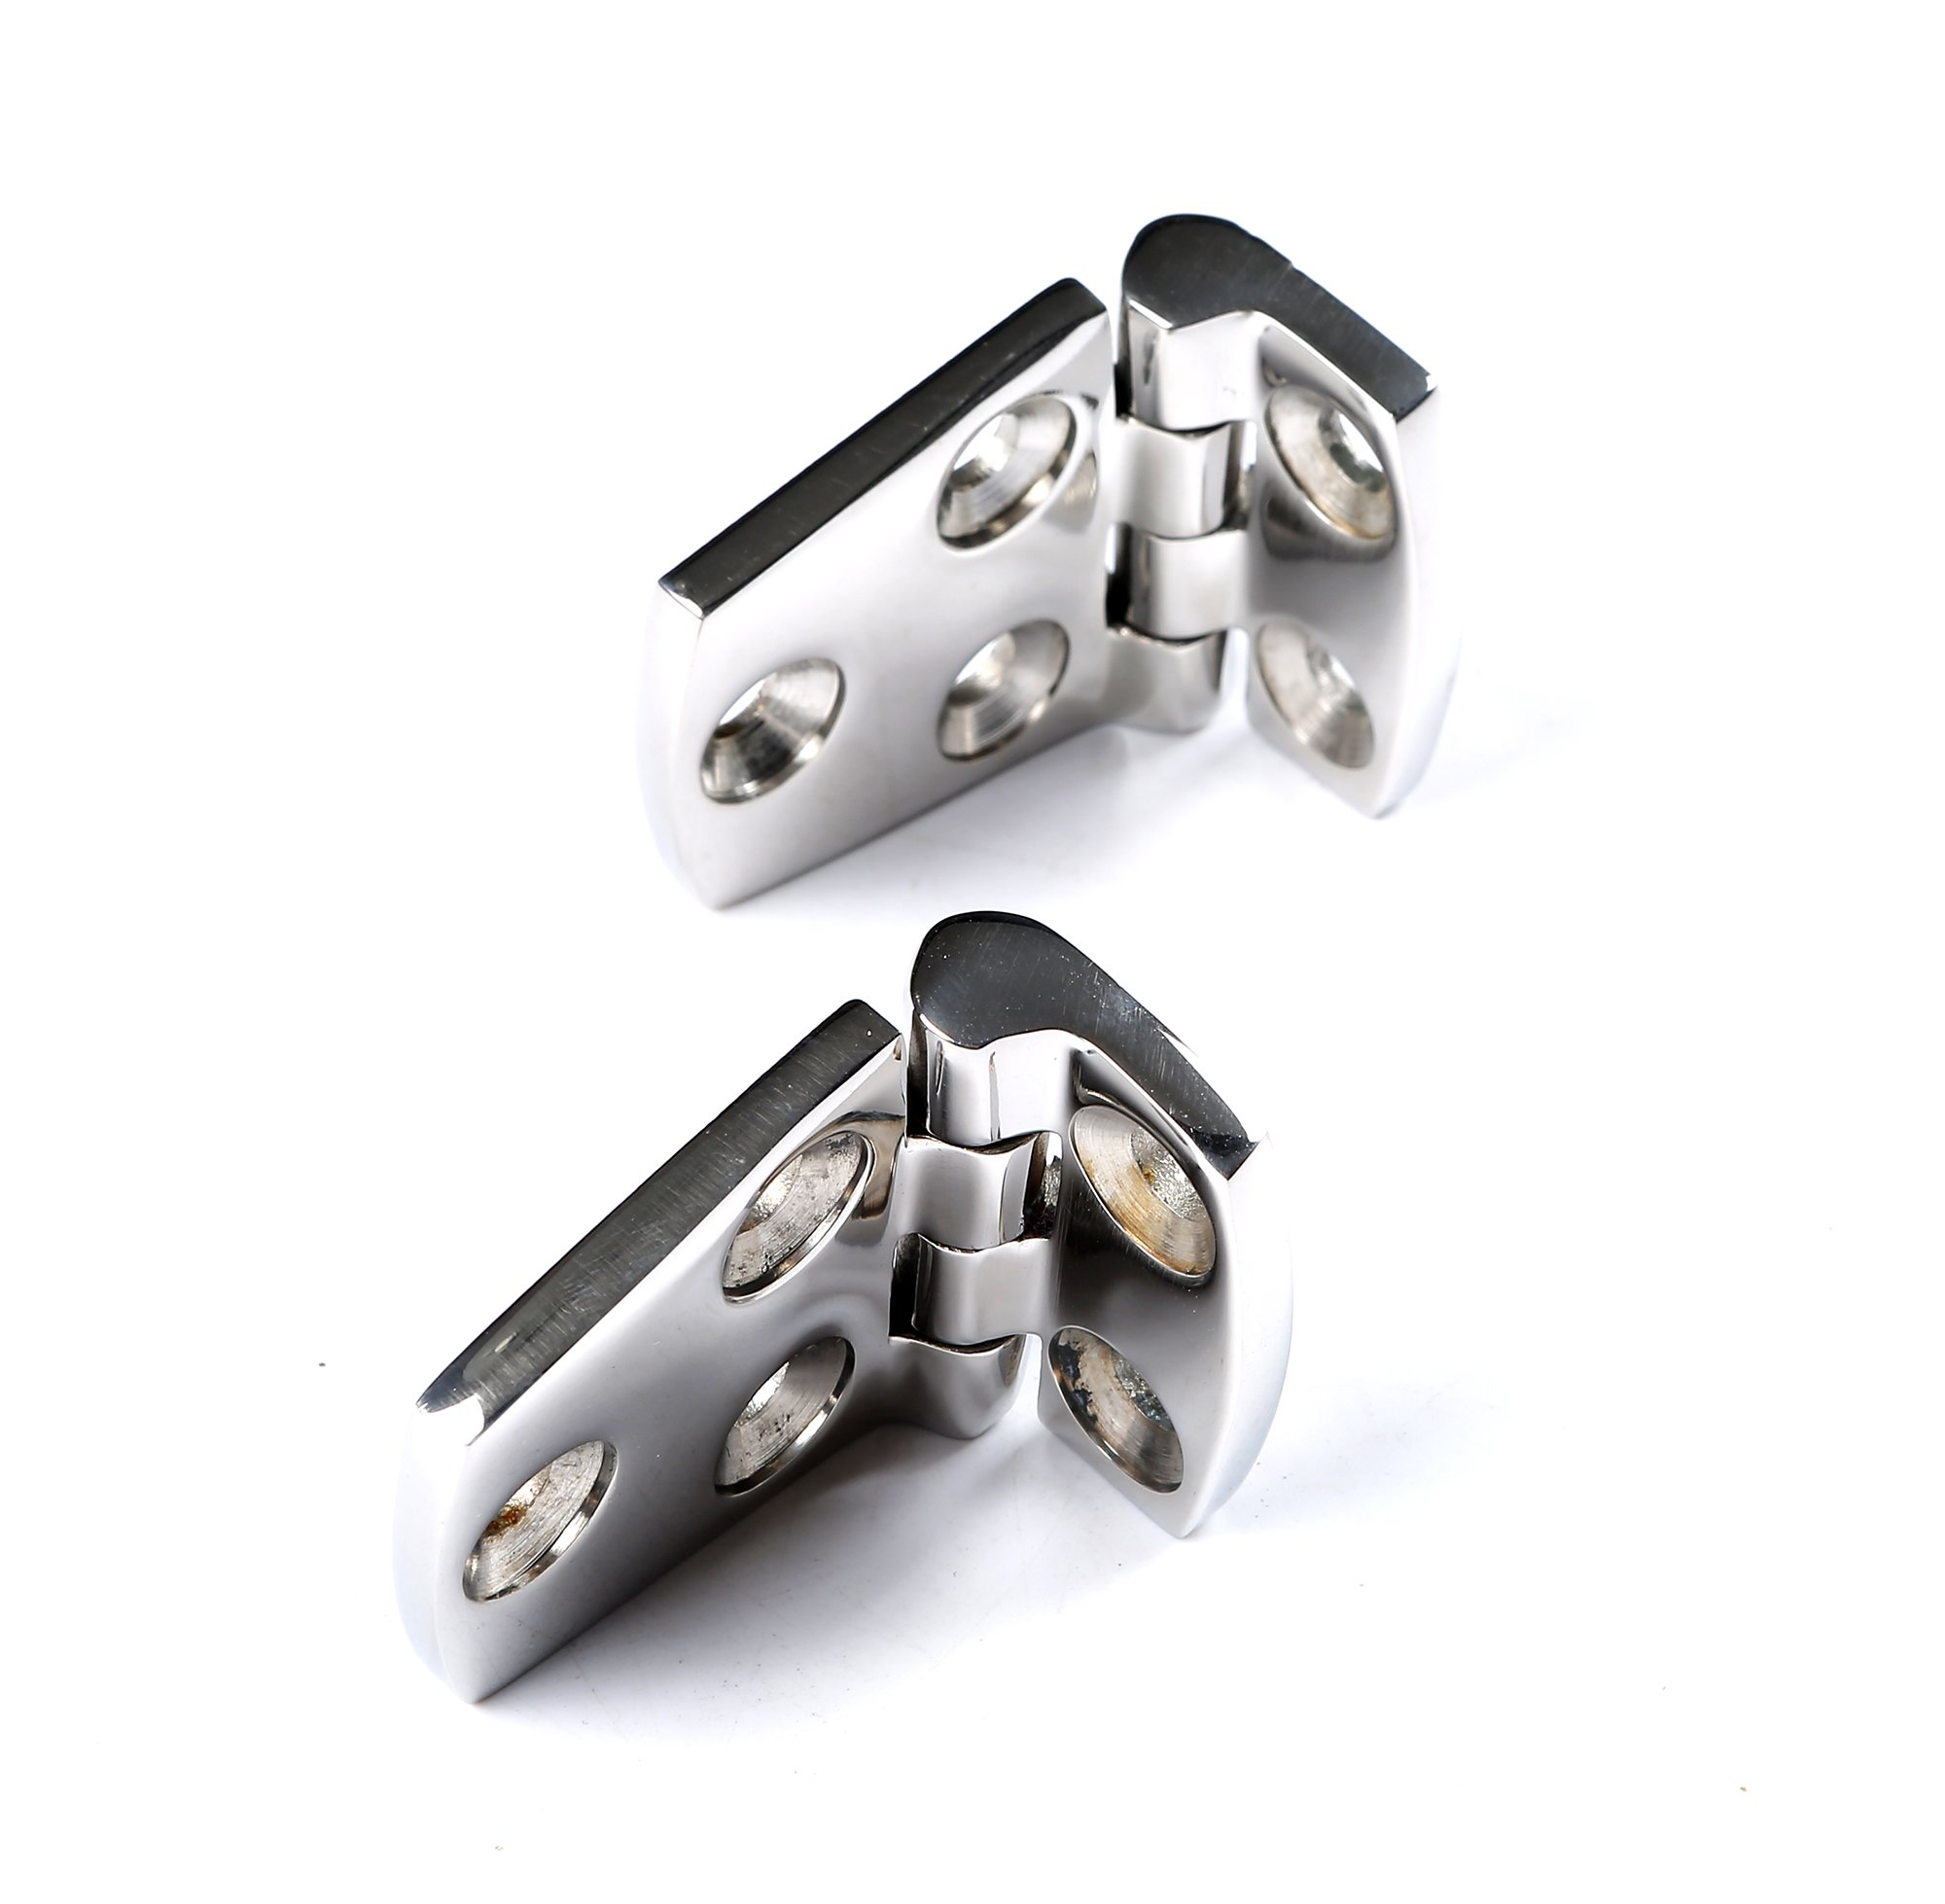 MxEol Boat Shortside Hinges Marine Hatch Flush Mount Heavy Duty Stainless Steel W/Fasteners 1-1/2'' x 2-1/4'' Pair